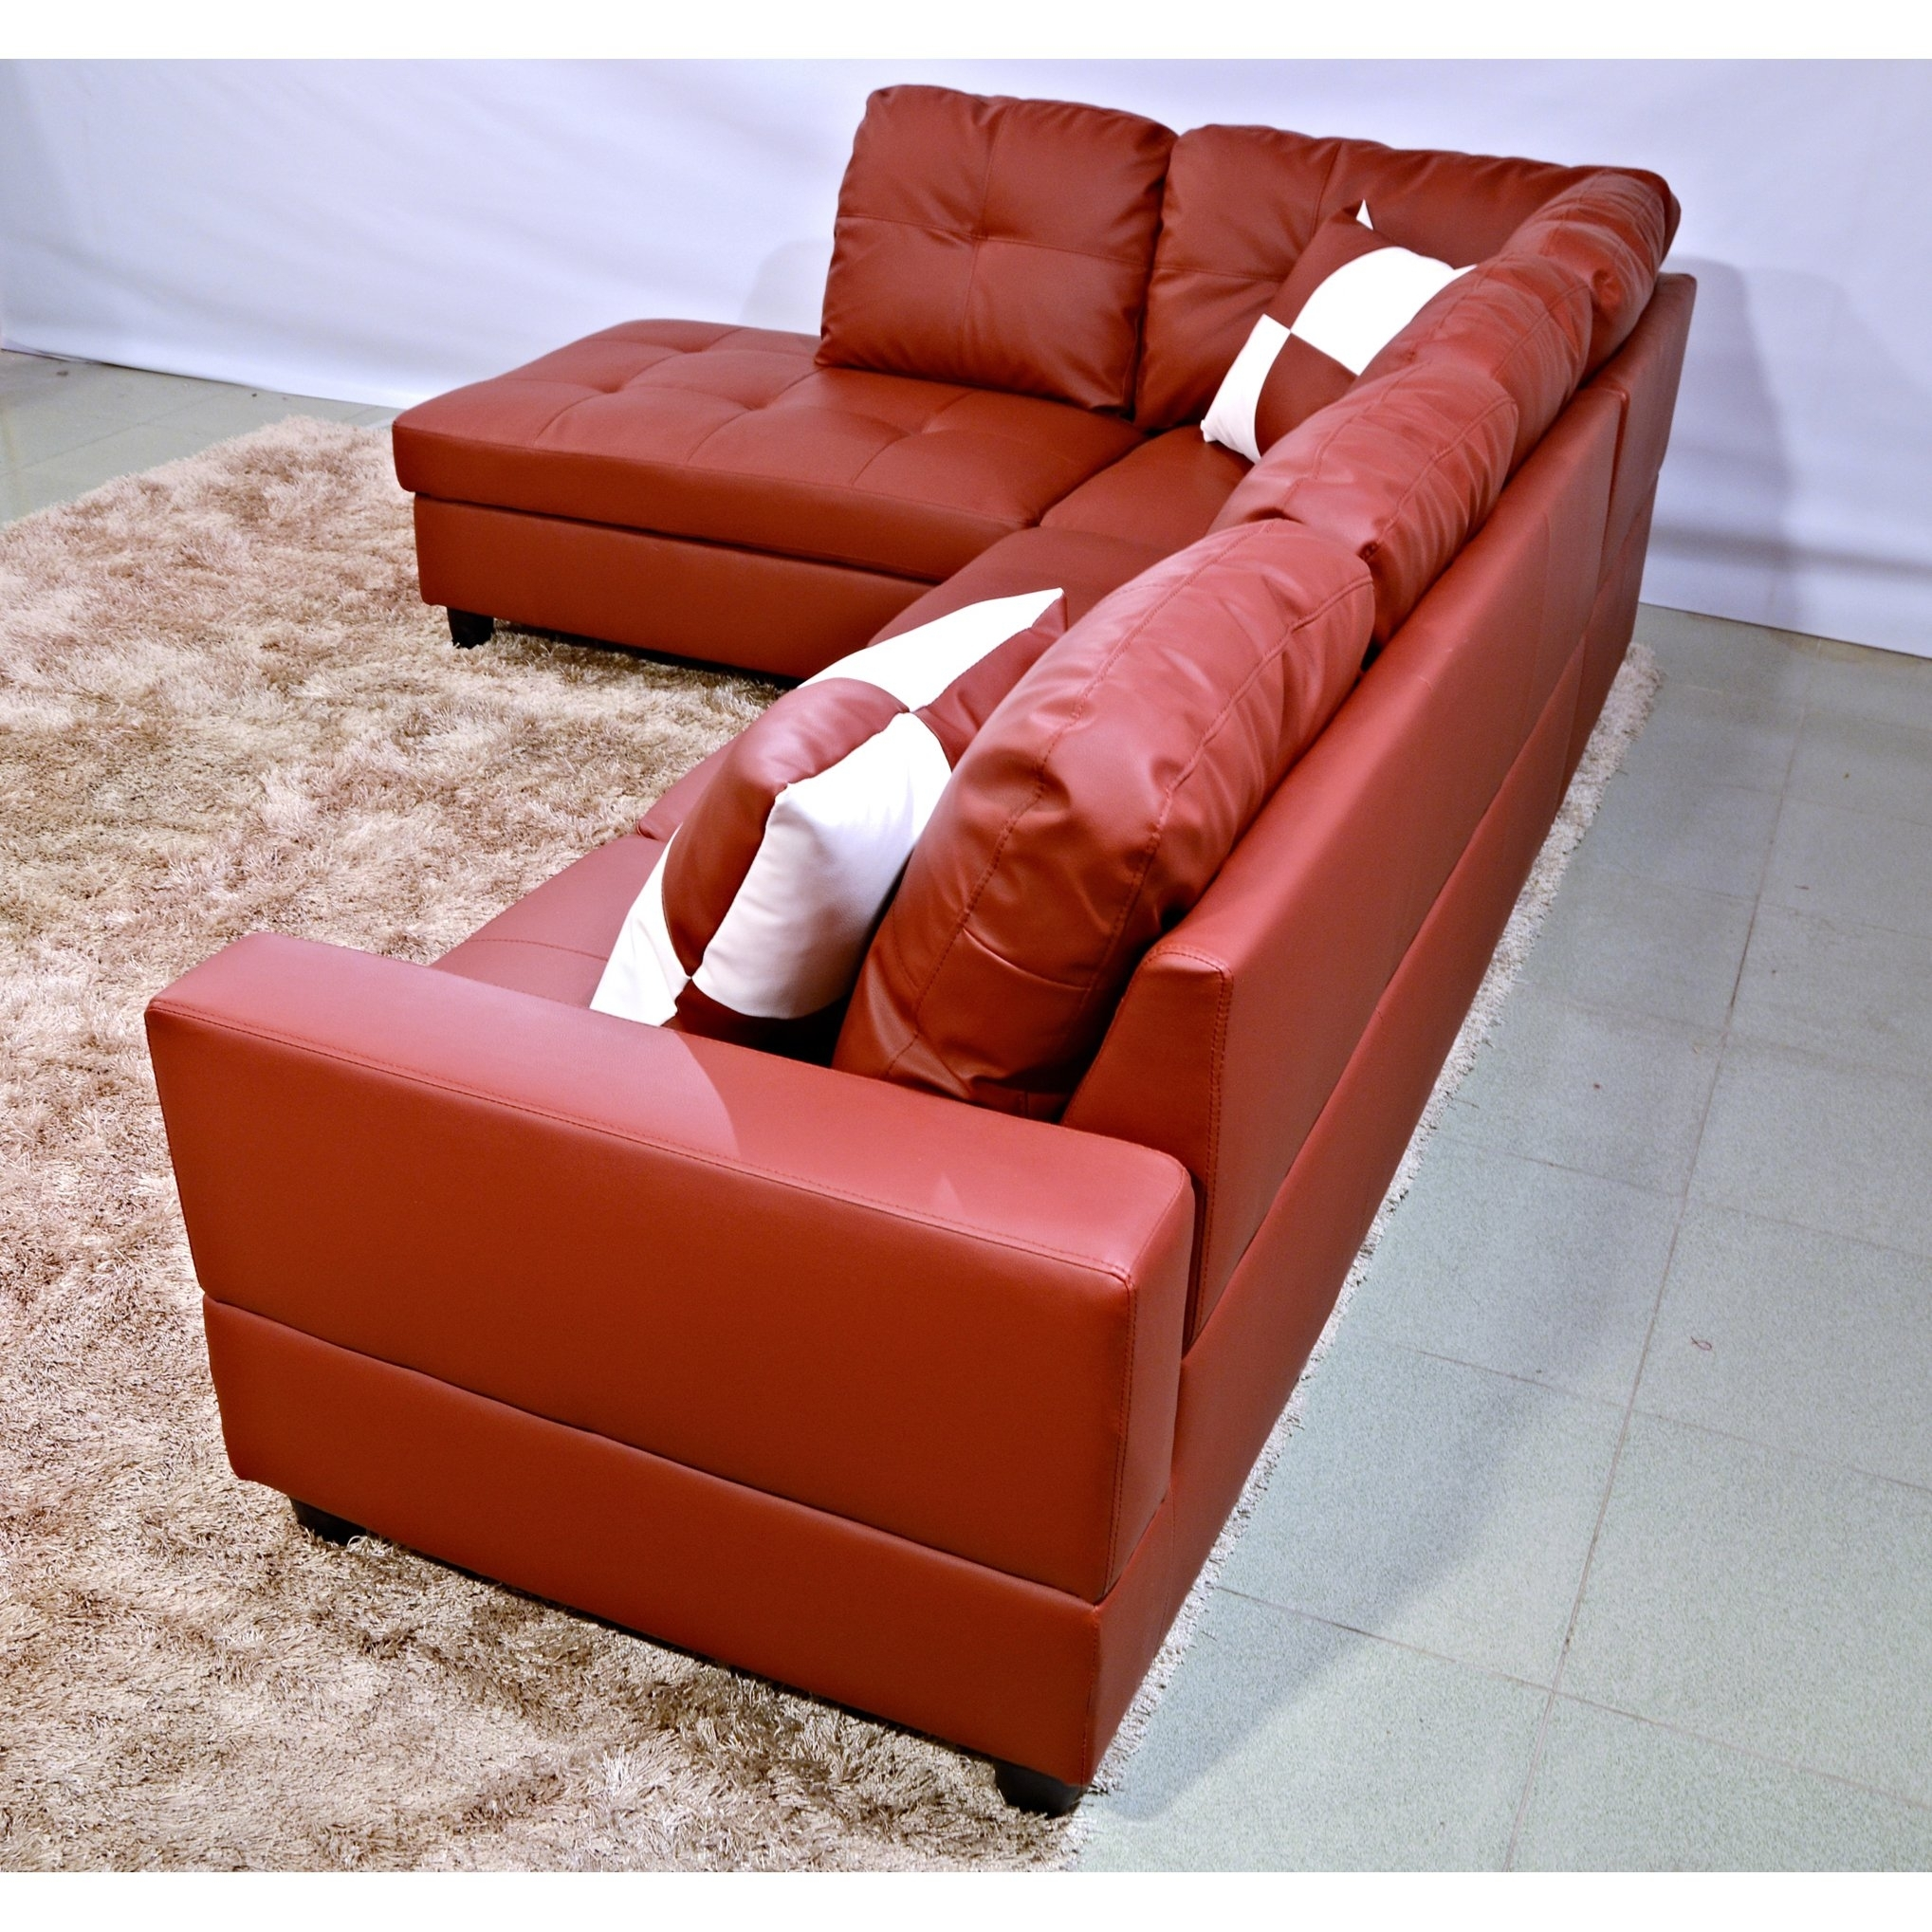 Shop Delma 3-Piece Red Faux Leather Furniture Set - Free Shipping pertaining to Tenny Dark Grey 2 Piece Right Facing Chaise Sectionals With 2 Headrest (Image 25 of 30)